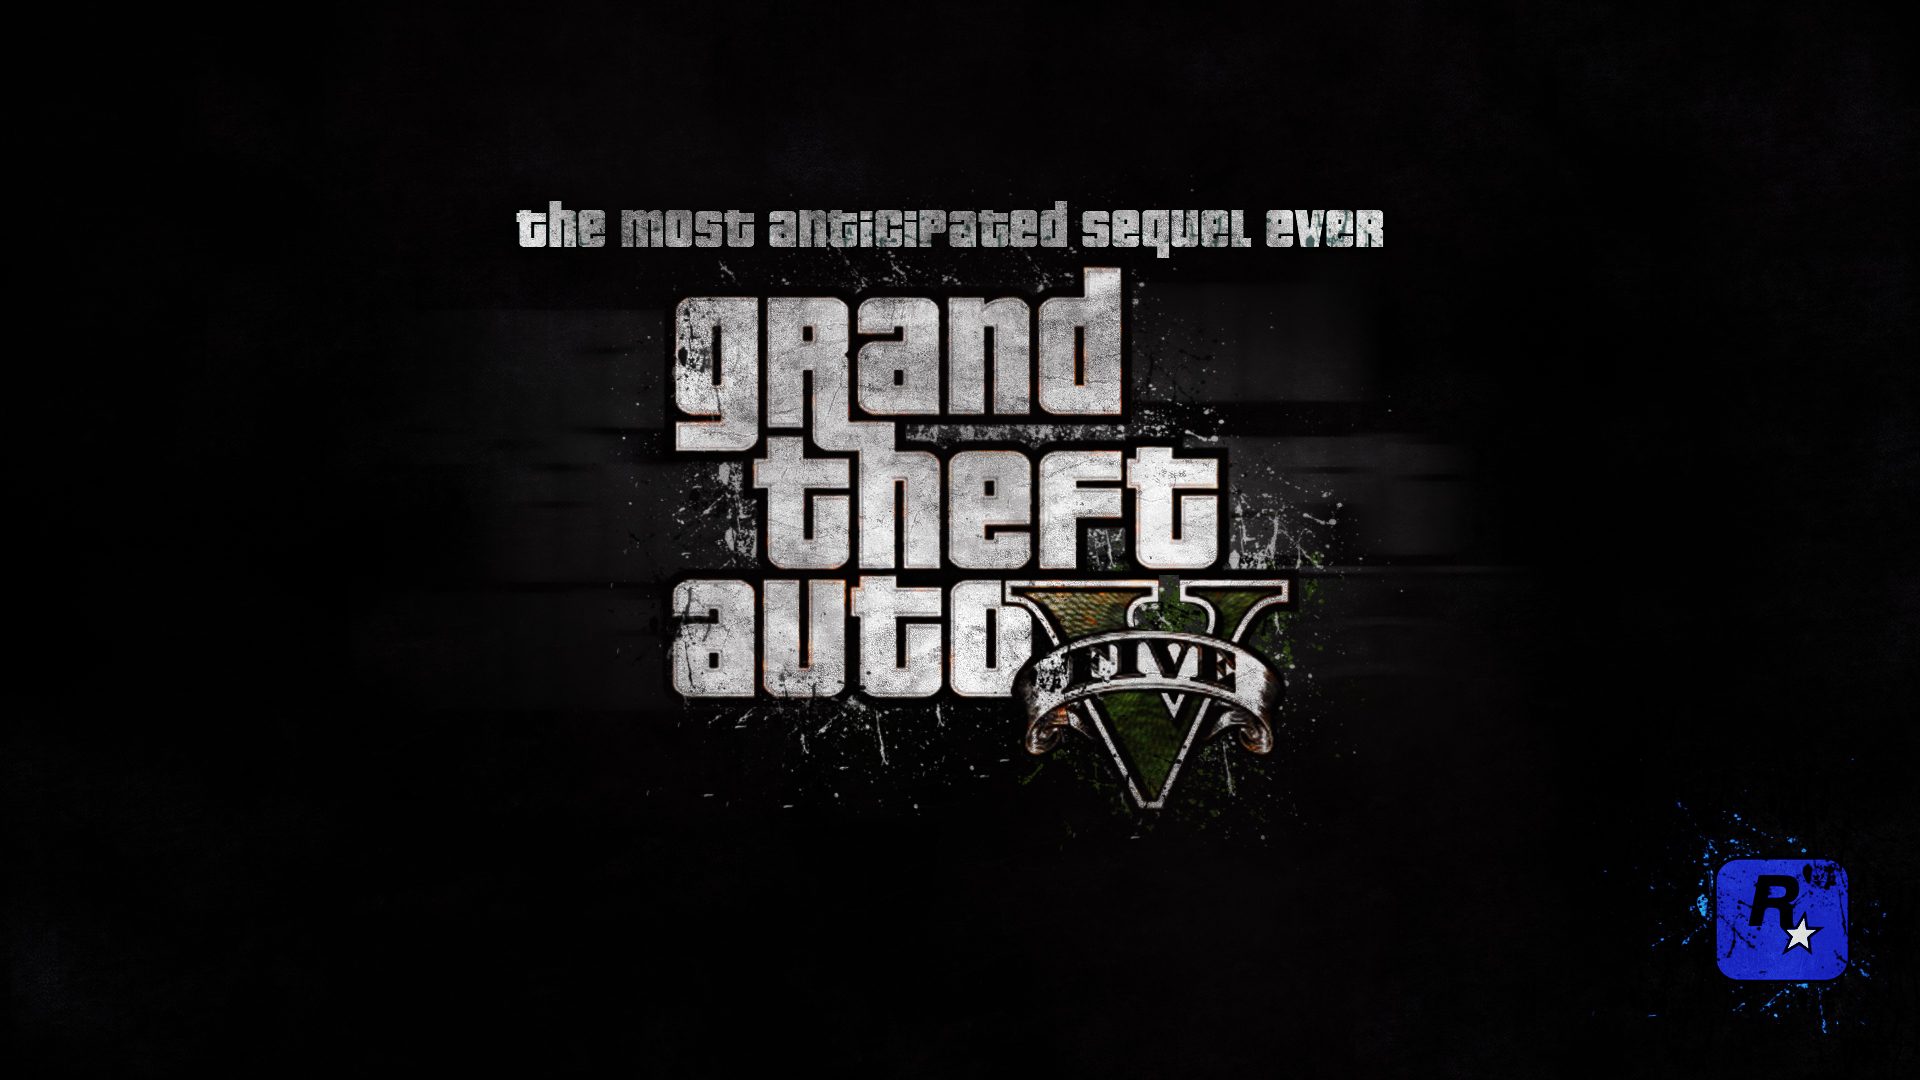 GTA 5 Grunge wallpaper 1920x1080 by Vatox 1920x1080